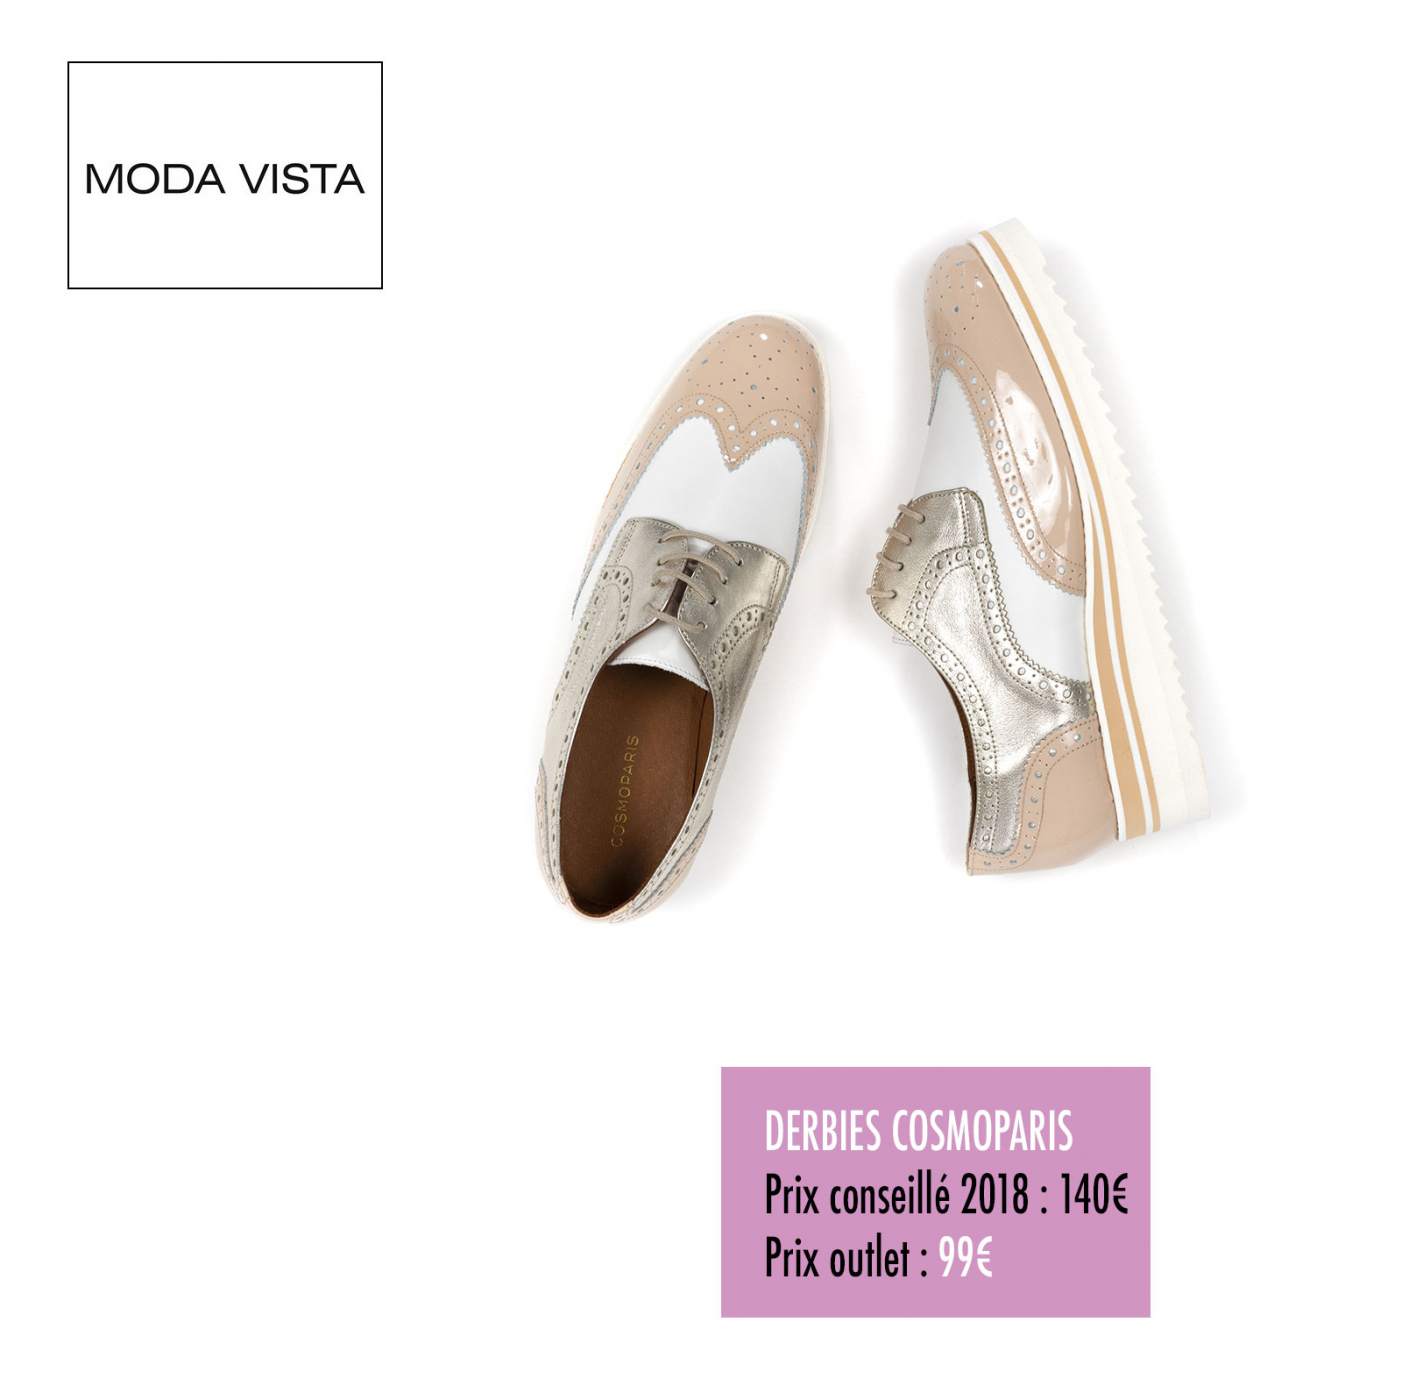 Derbies COSMOPARIS MODAVISTA